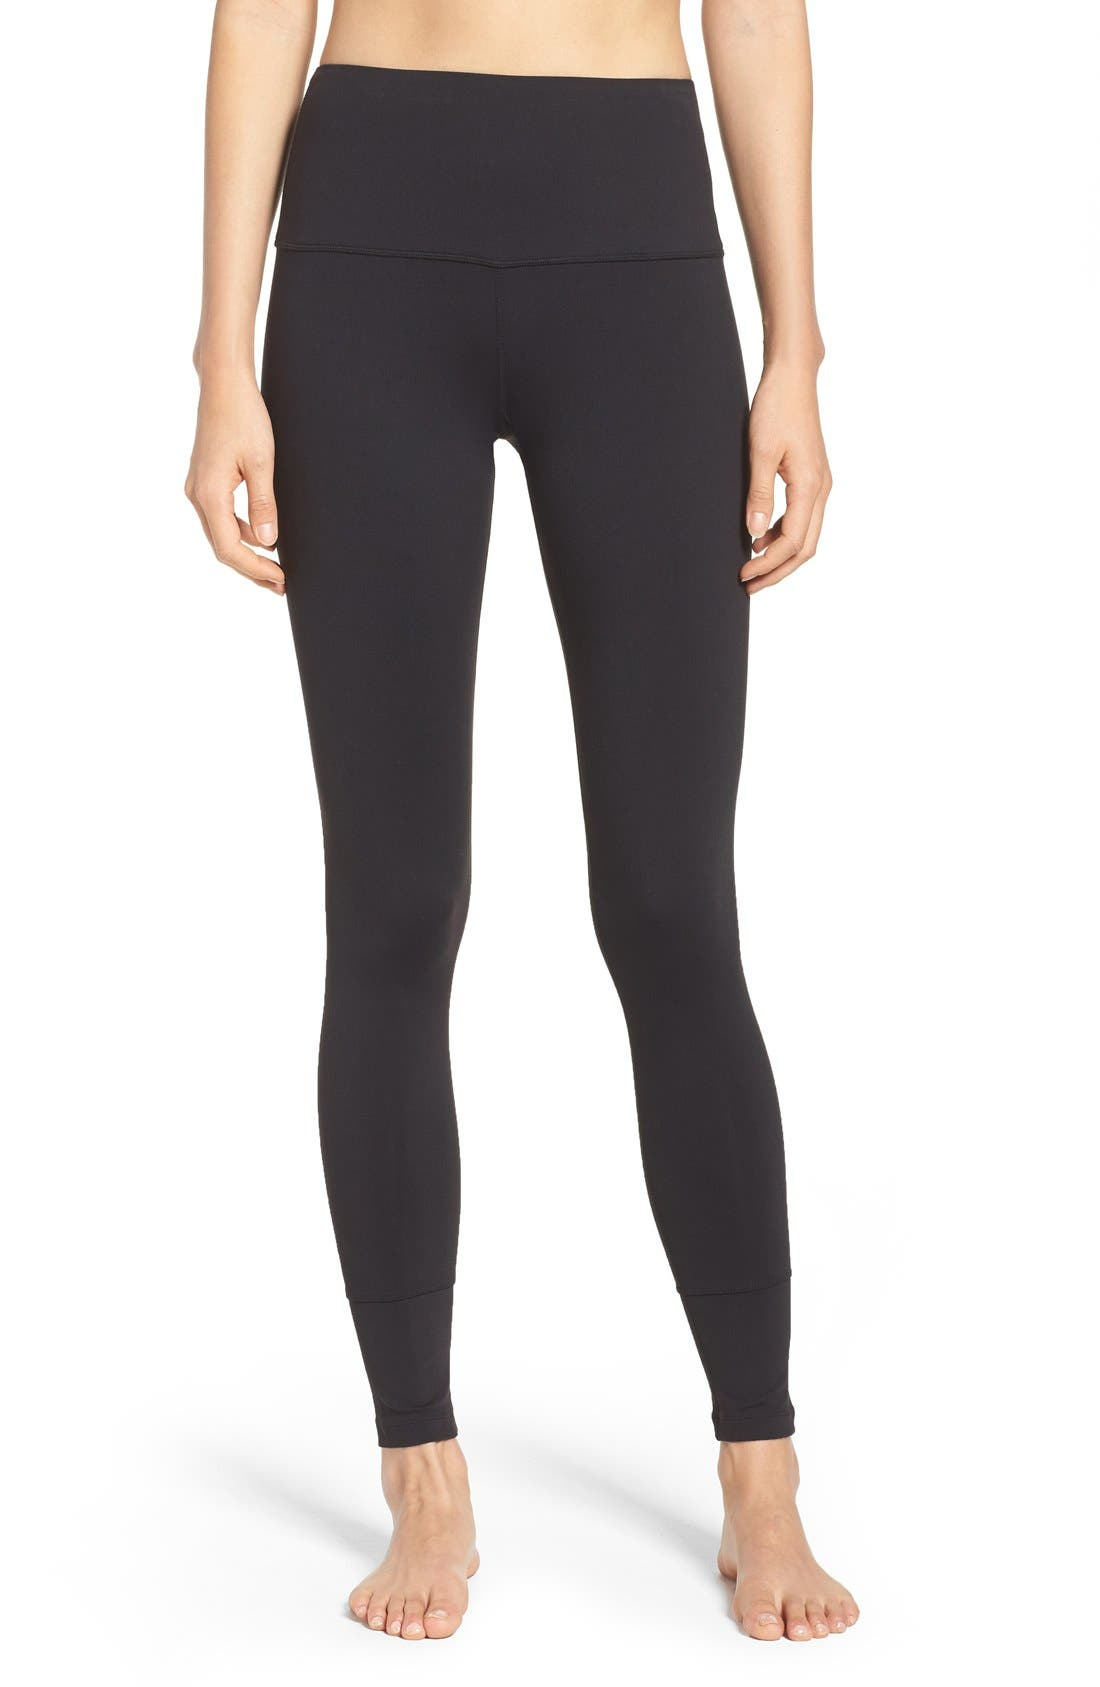 Splits59 'Bardot' High Waist Leggings